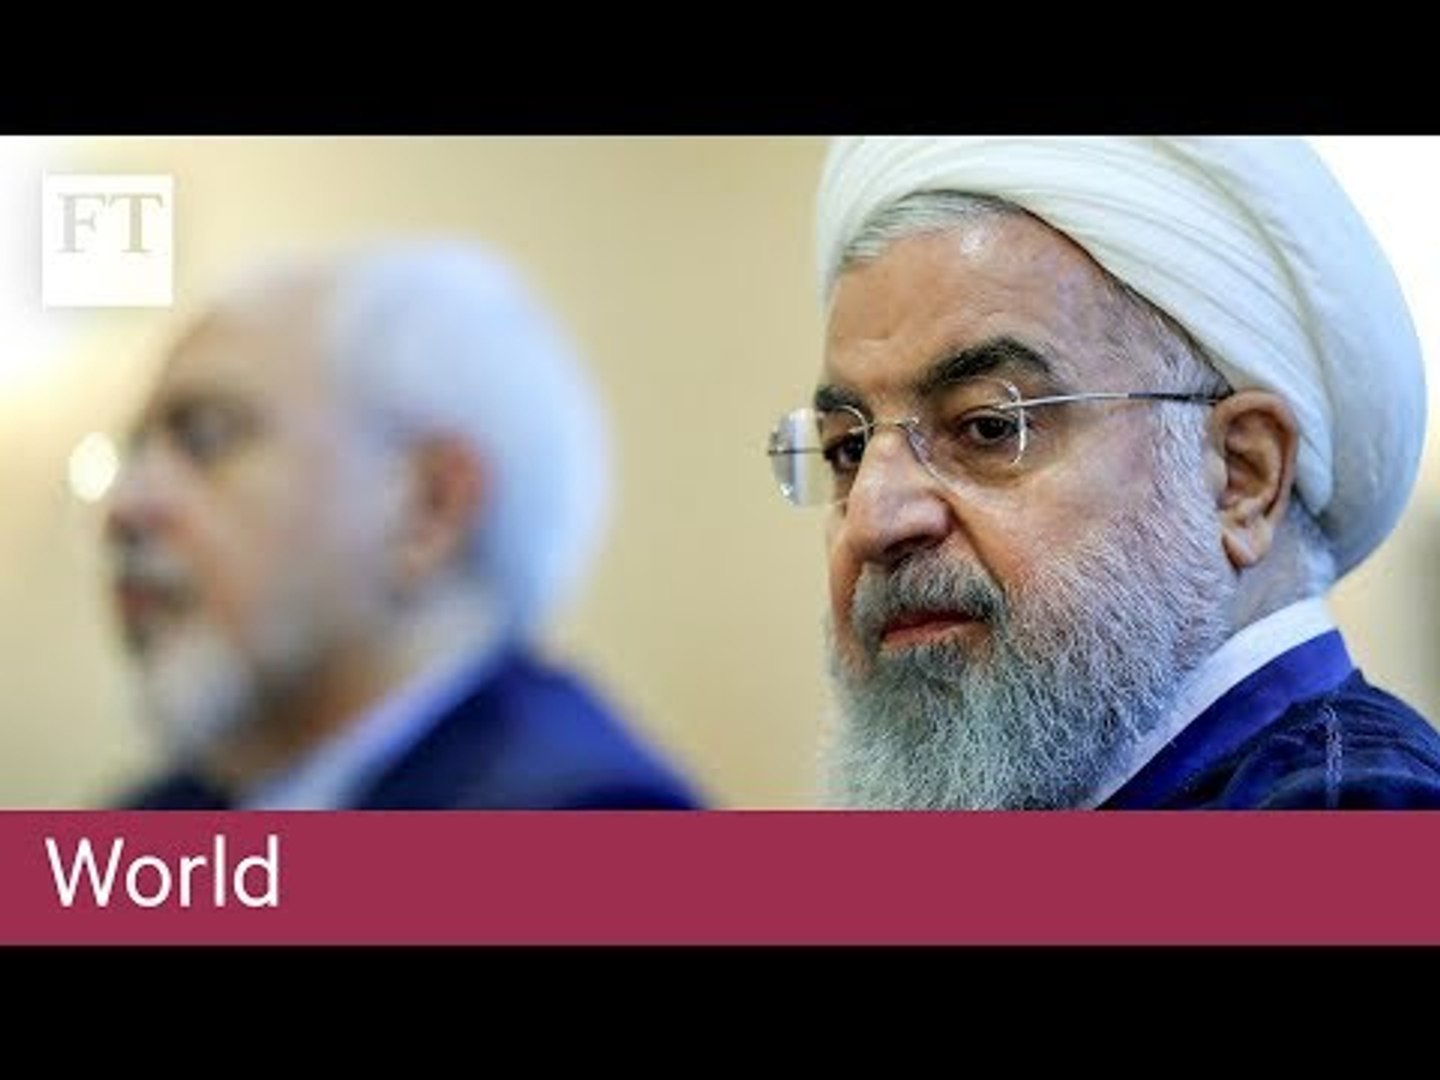 Rouhani warns Trump about 'mother of all wars'